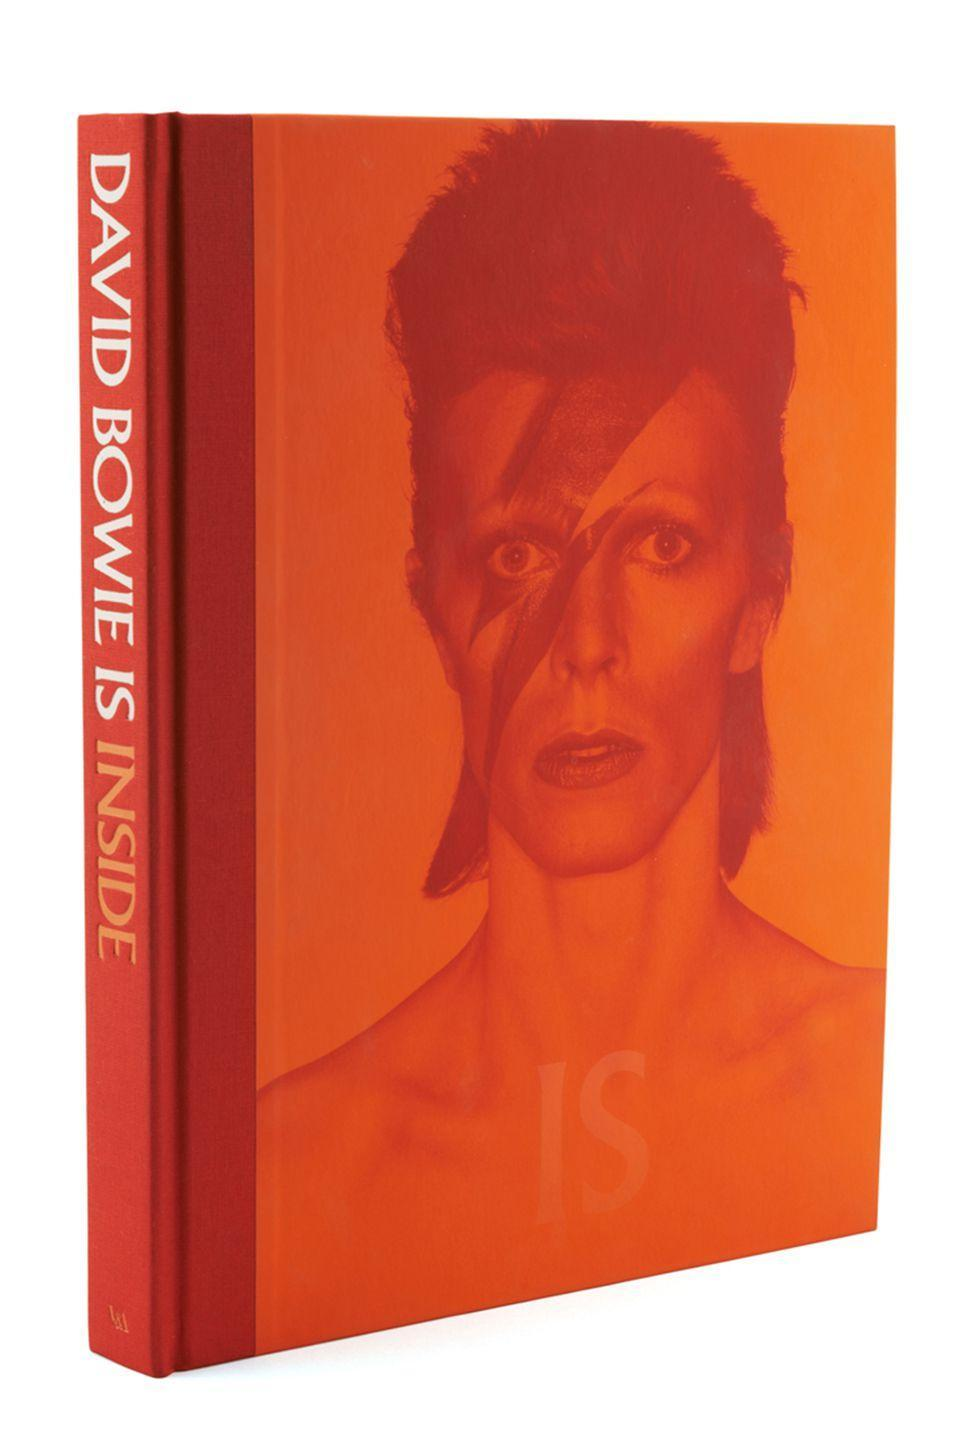 "<p><a href=""https://www.waterstones.com/book/david-bowie-is/victoria-broackes/geoffrey-marsh/9781851777372"" rel=""nofollow noopener"" target=""_blank"" data-ylk=""slk:SHOP NOW"" class=""link rapid-noclick-resp"">SHOP NOW</a></p><p>Delve into the world of David Bowie and discover his influence not only in the music industry, but the fashion world as well. The book traces his career from its beginnings in London, through the breakthroughs of Space Oddity and Ziggy Stardust and the Spiders from Mars, and on to his impact on the larger international tradition of twentieth-century avant-garde art. Plus, the book is a chic addition to any coffee table. </p><p><em>David Bowie is, £28, Waterstones </em></p>"